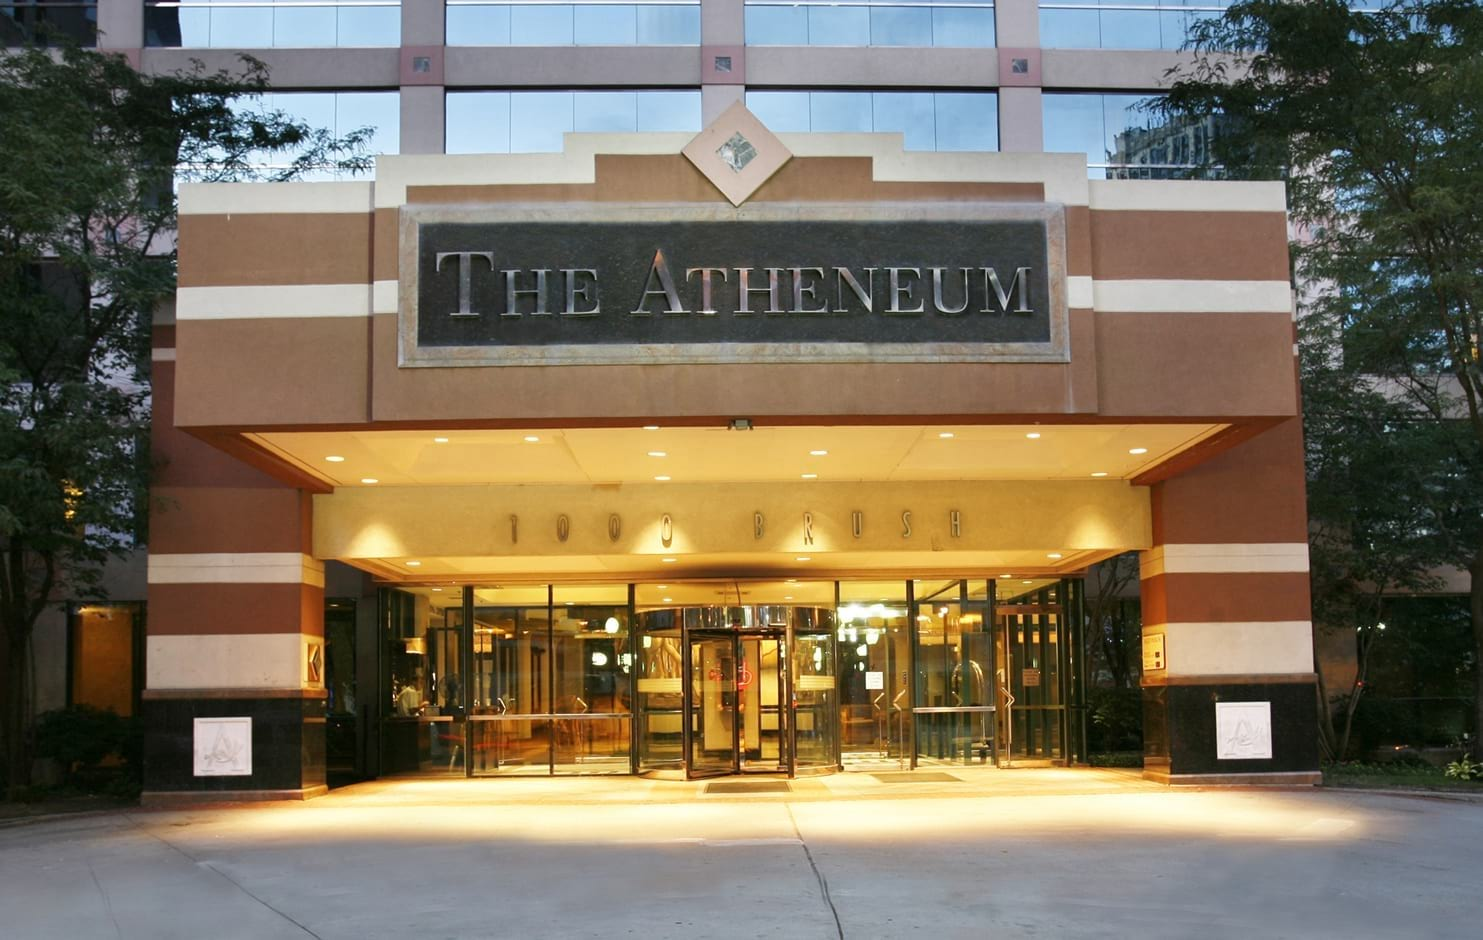 Atheneum Hotel & Conference Center, a downtown Detroit hotel